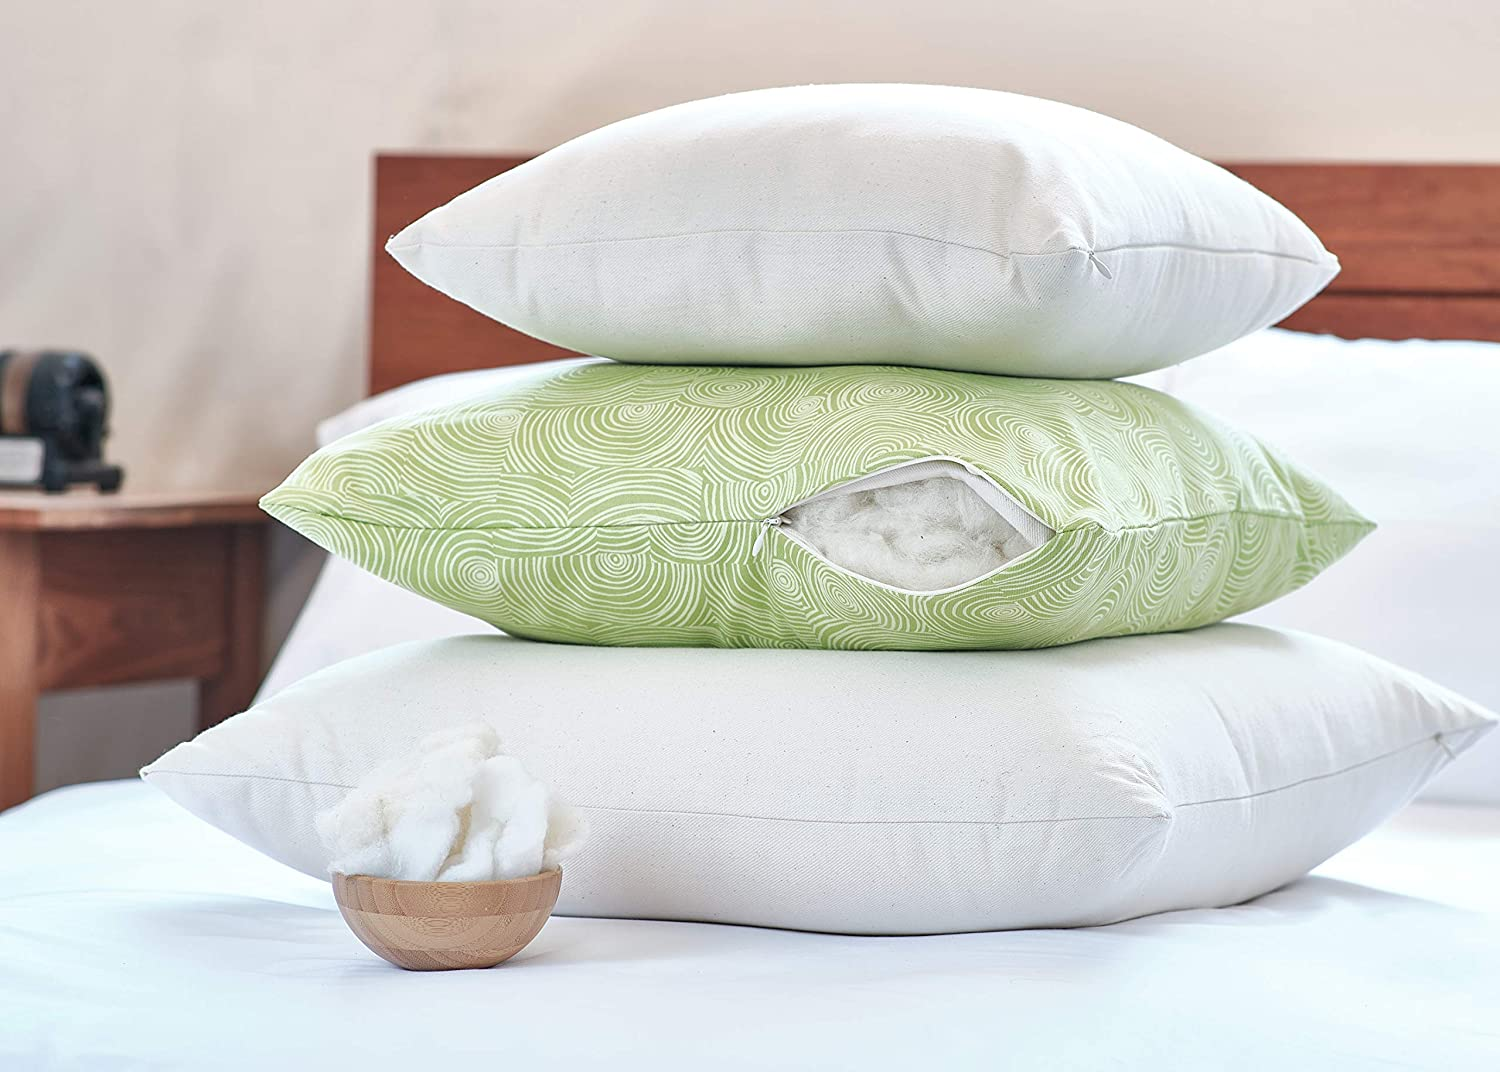 White Lotus Home WSPZ05 Wool Sleep Pillow with Organic Case with Zipper, 20x30-Queen Medium, Natural